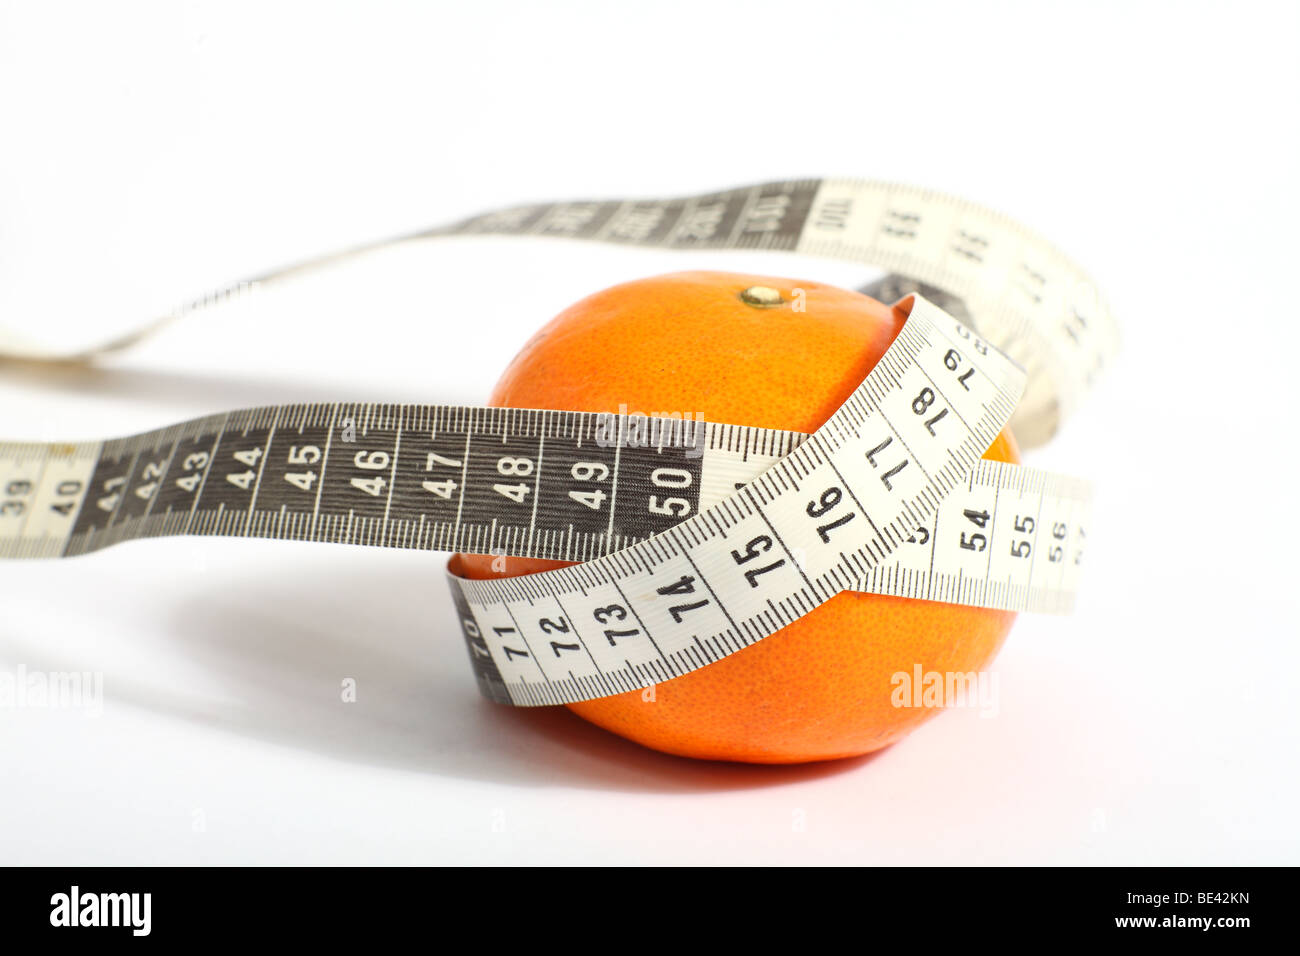 A dressmaker's tape measure, showing metric measurements, with a tangerine, symbolising a healthy diet of fruit - Stock Image